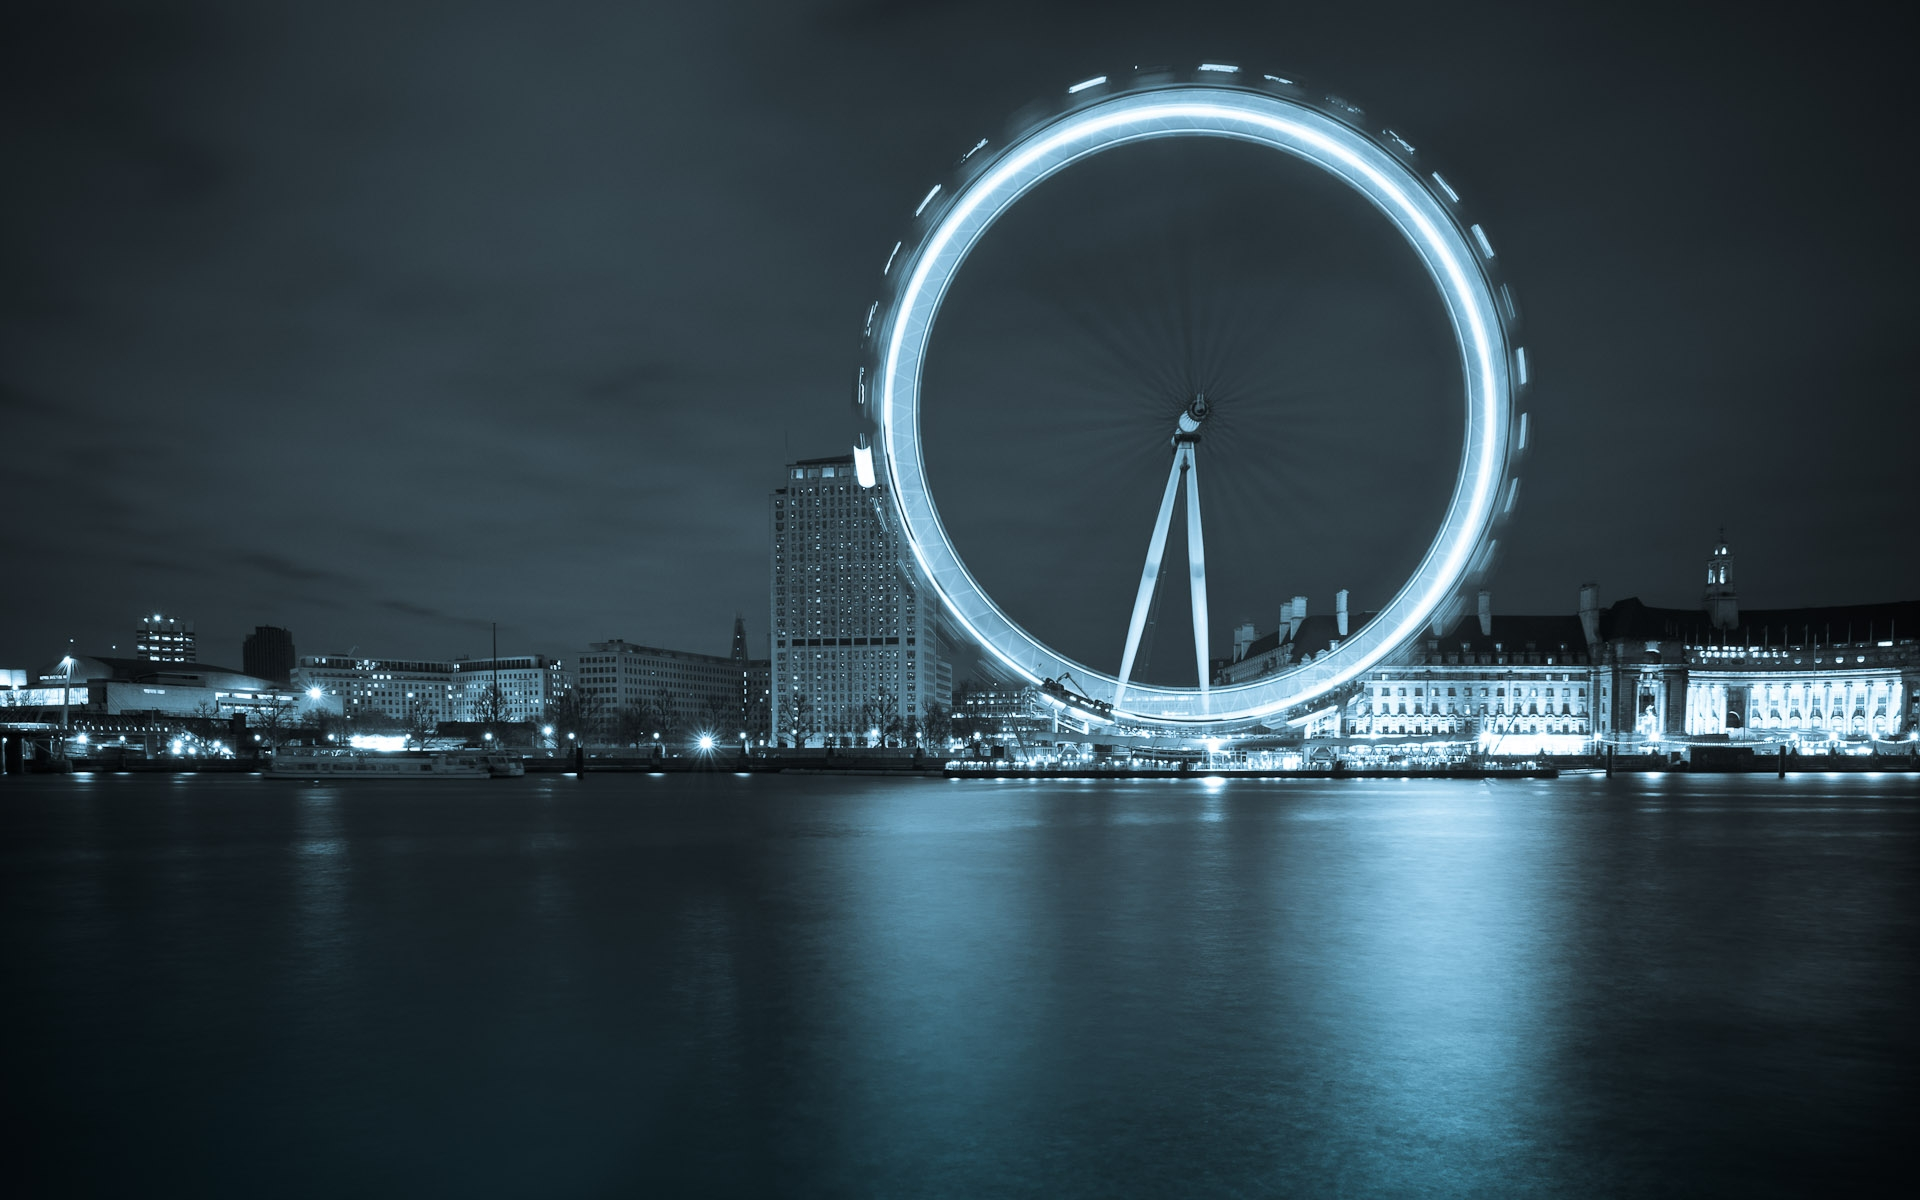 London eye big wheel across thames night slow shutter speed